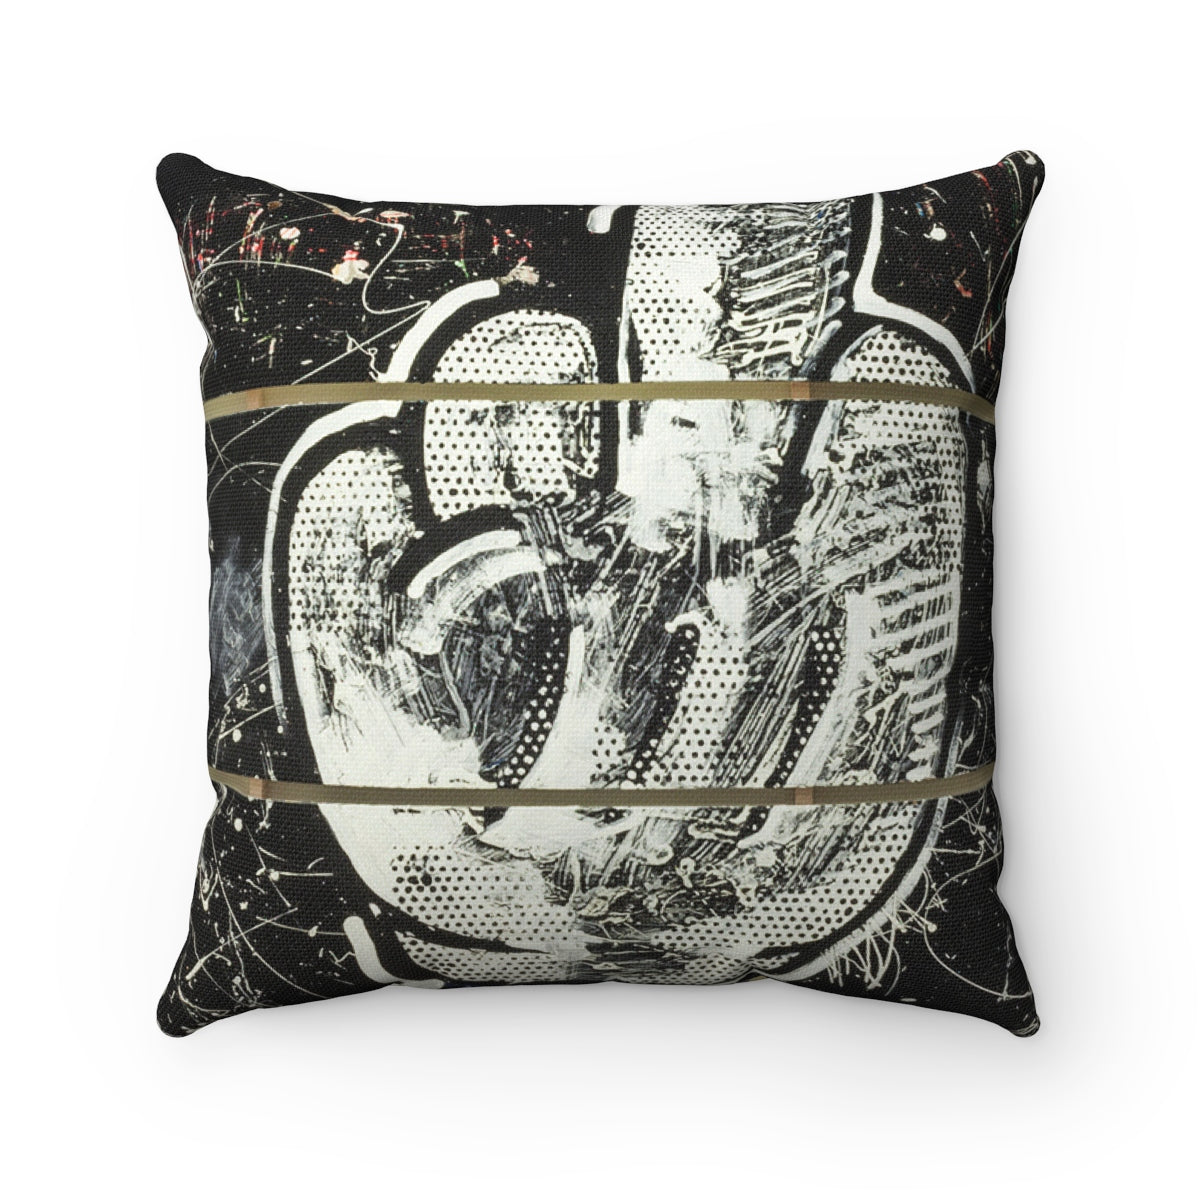 (American Dream = A Dream Deferred) Spun Polyester Square Pillow